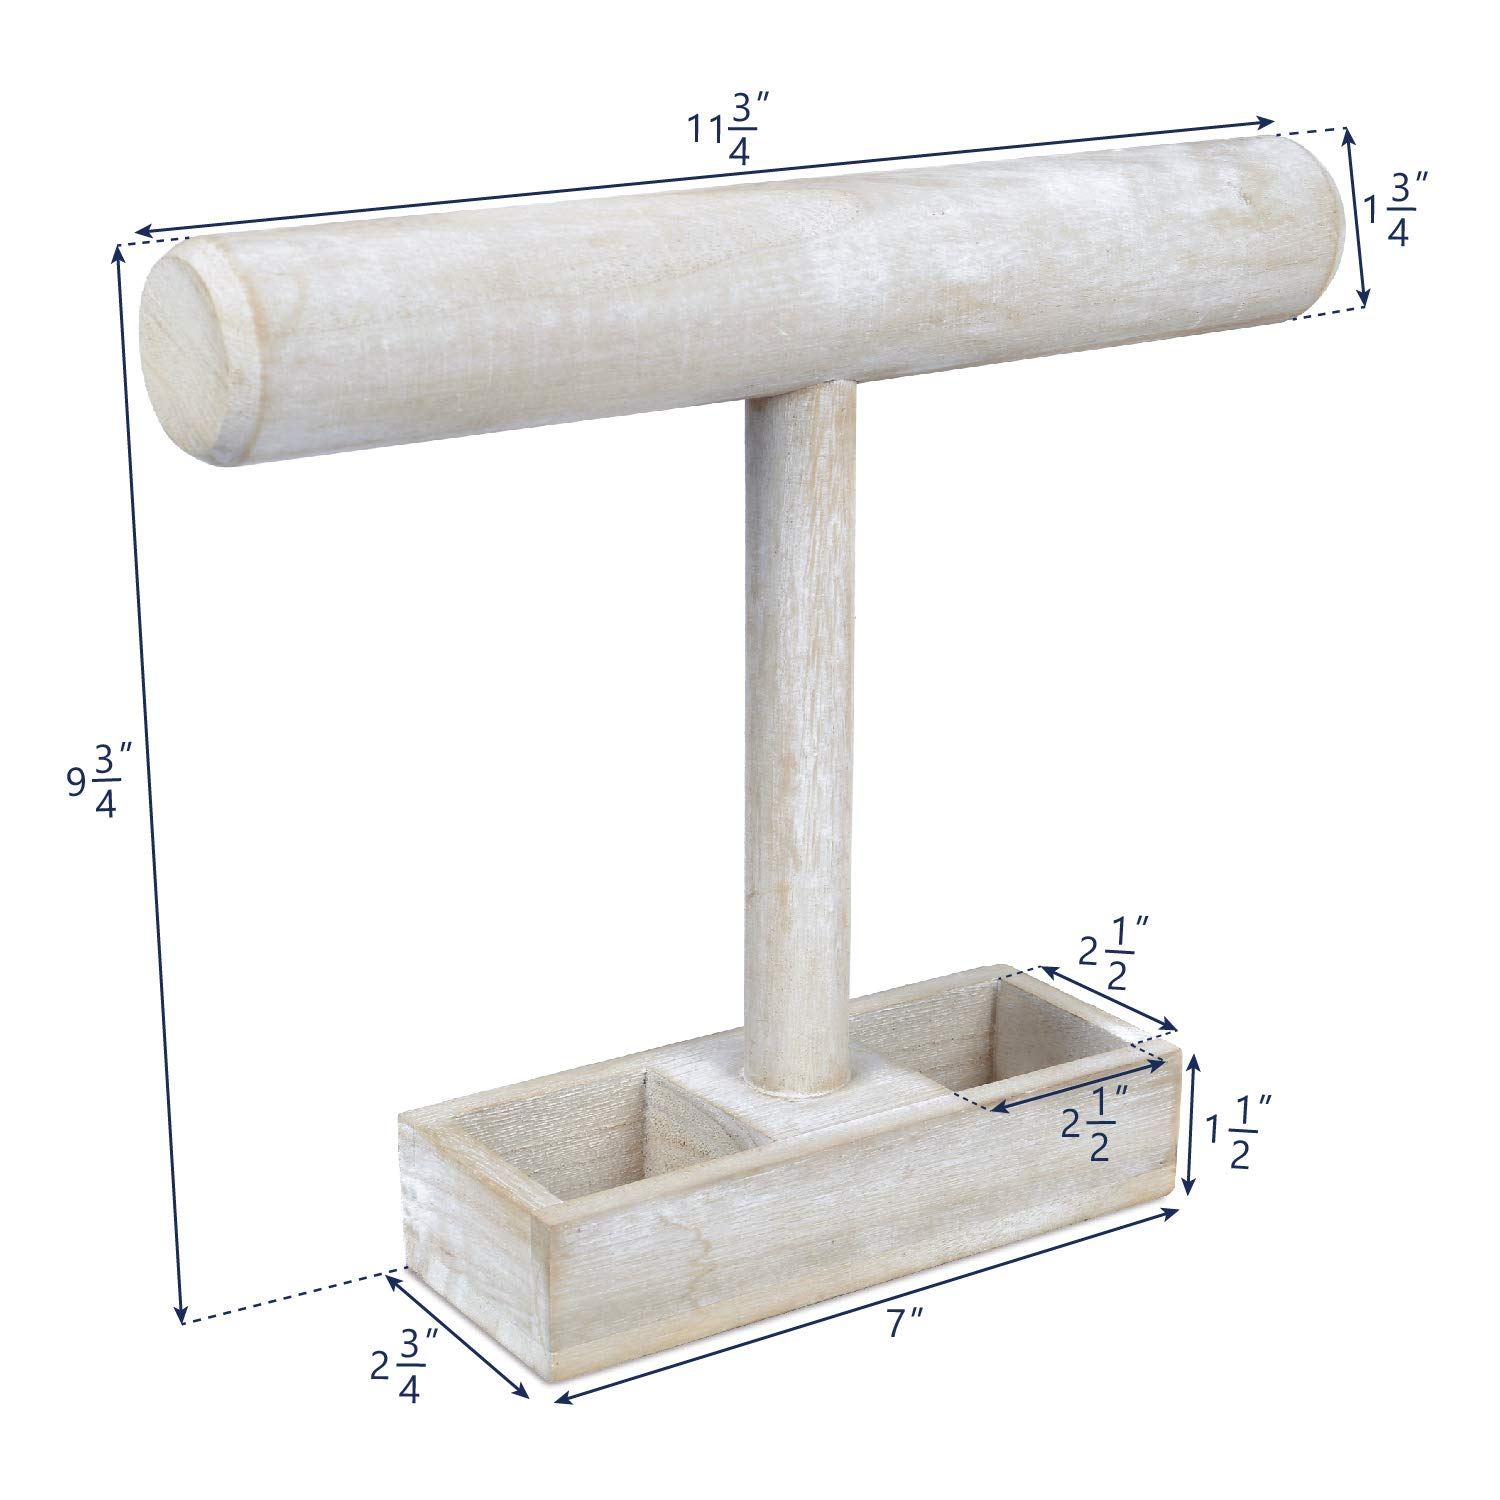 Jewelry Display Stand with a Storage Tray Mooca Wooden Wash White Bracelet Holder